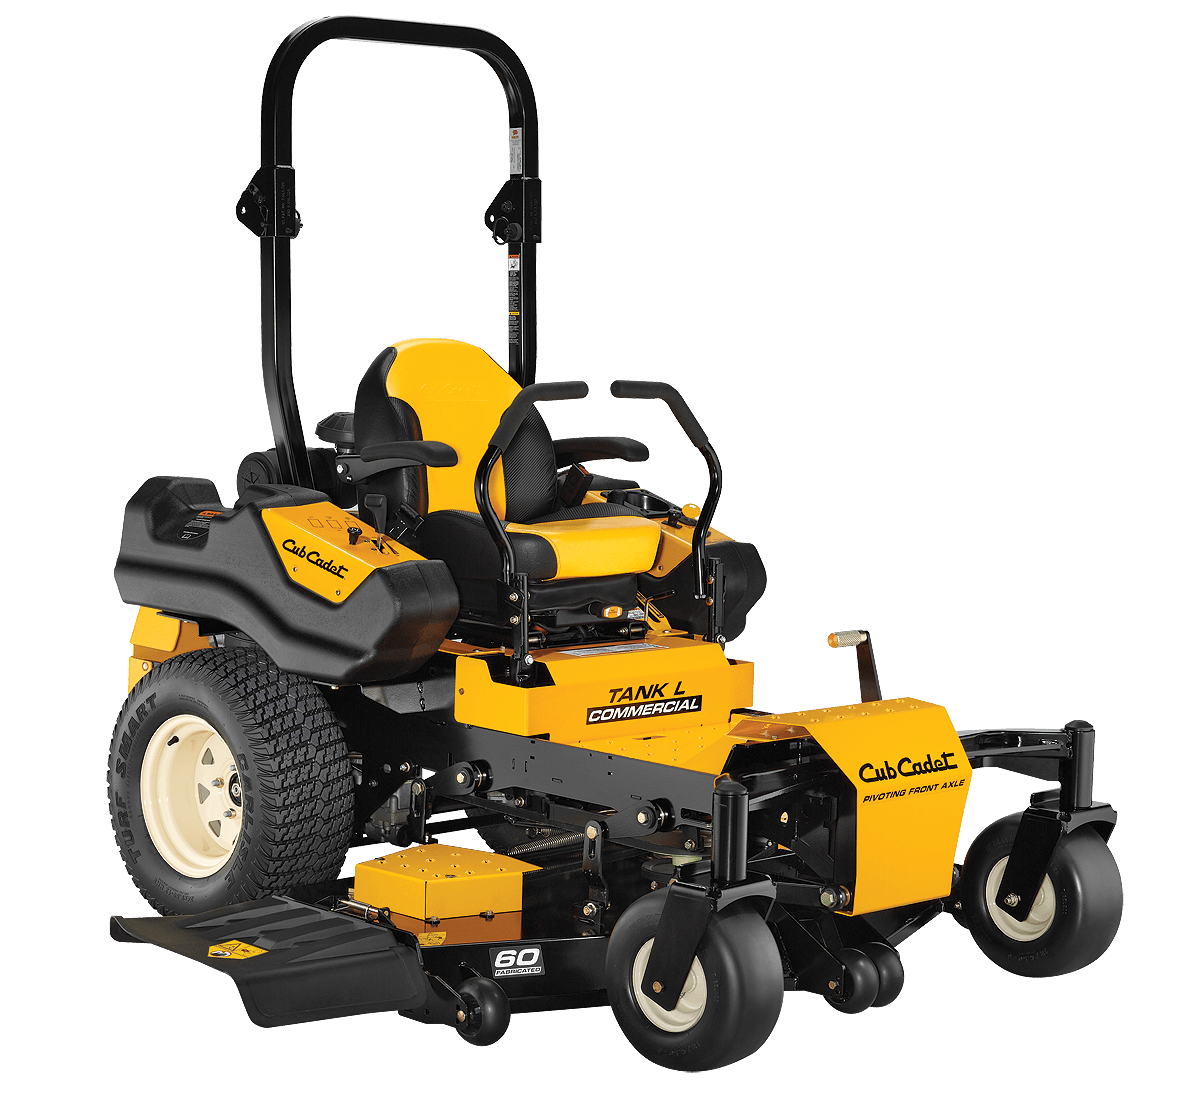 2017 Cub Cadet Tank L 60 KW in AULANDER, North Carolina